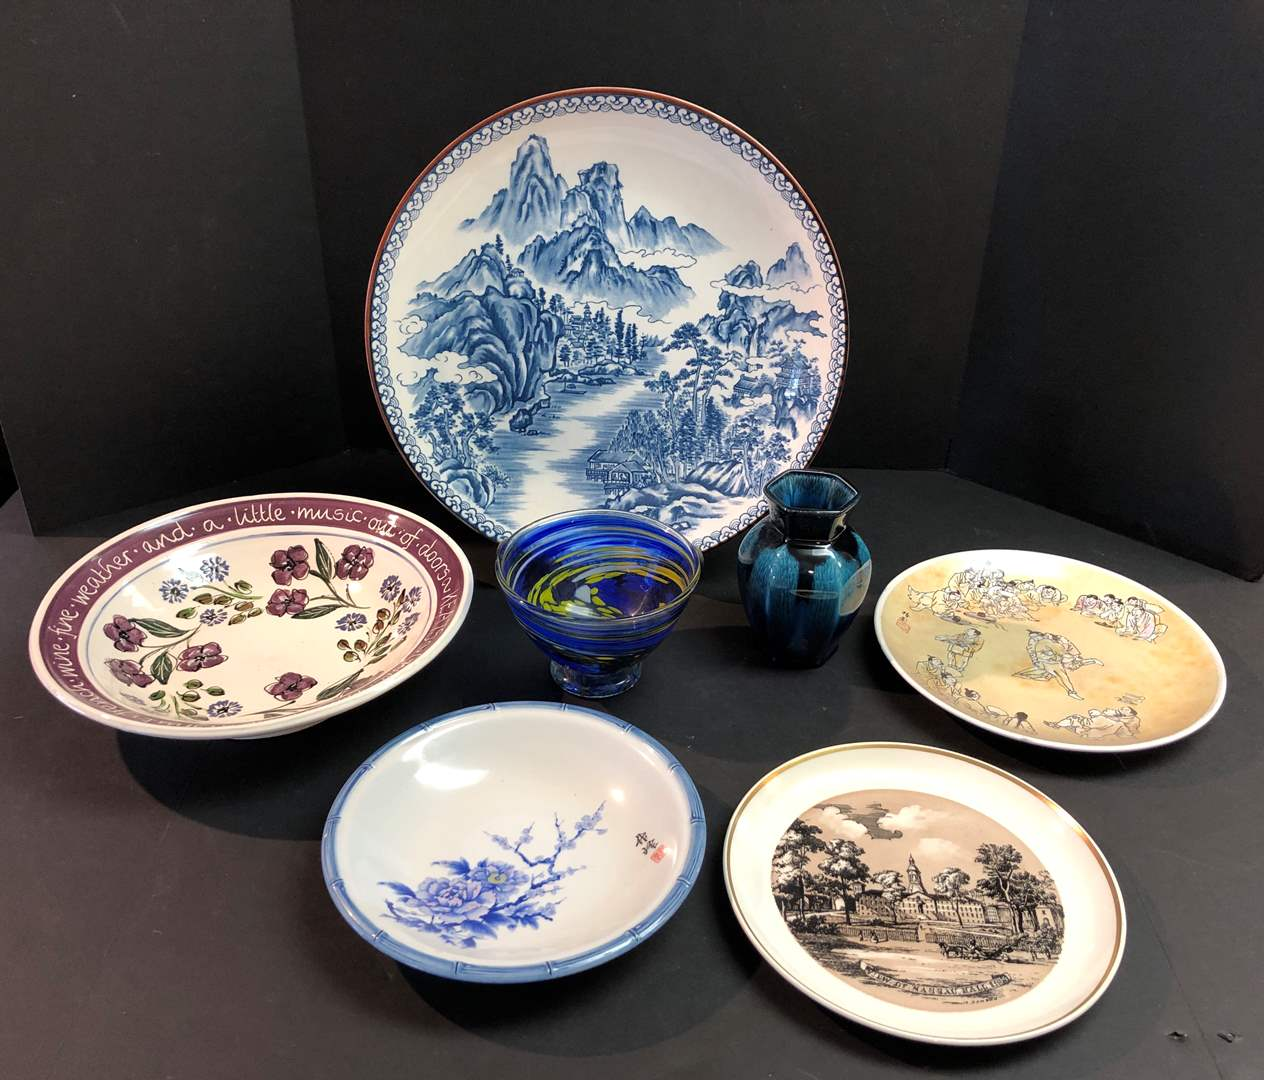 Lot # 162 - Asian Style Serving Dishes, Glass Bowl & Ceramic Vase (main image)